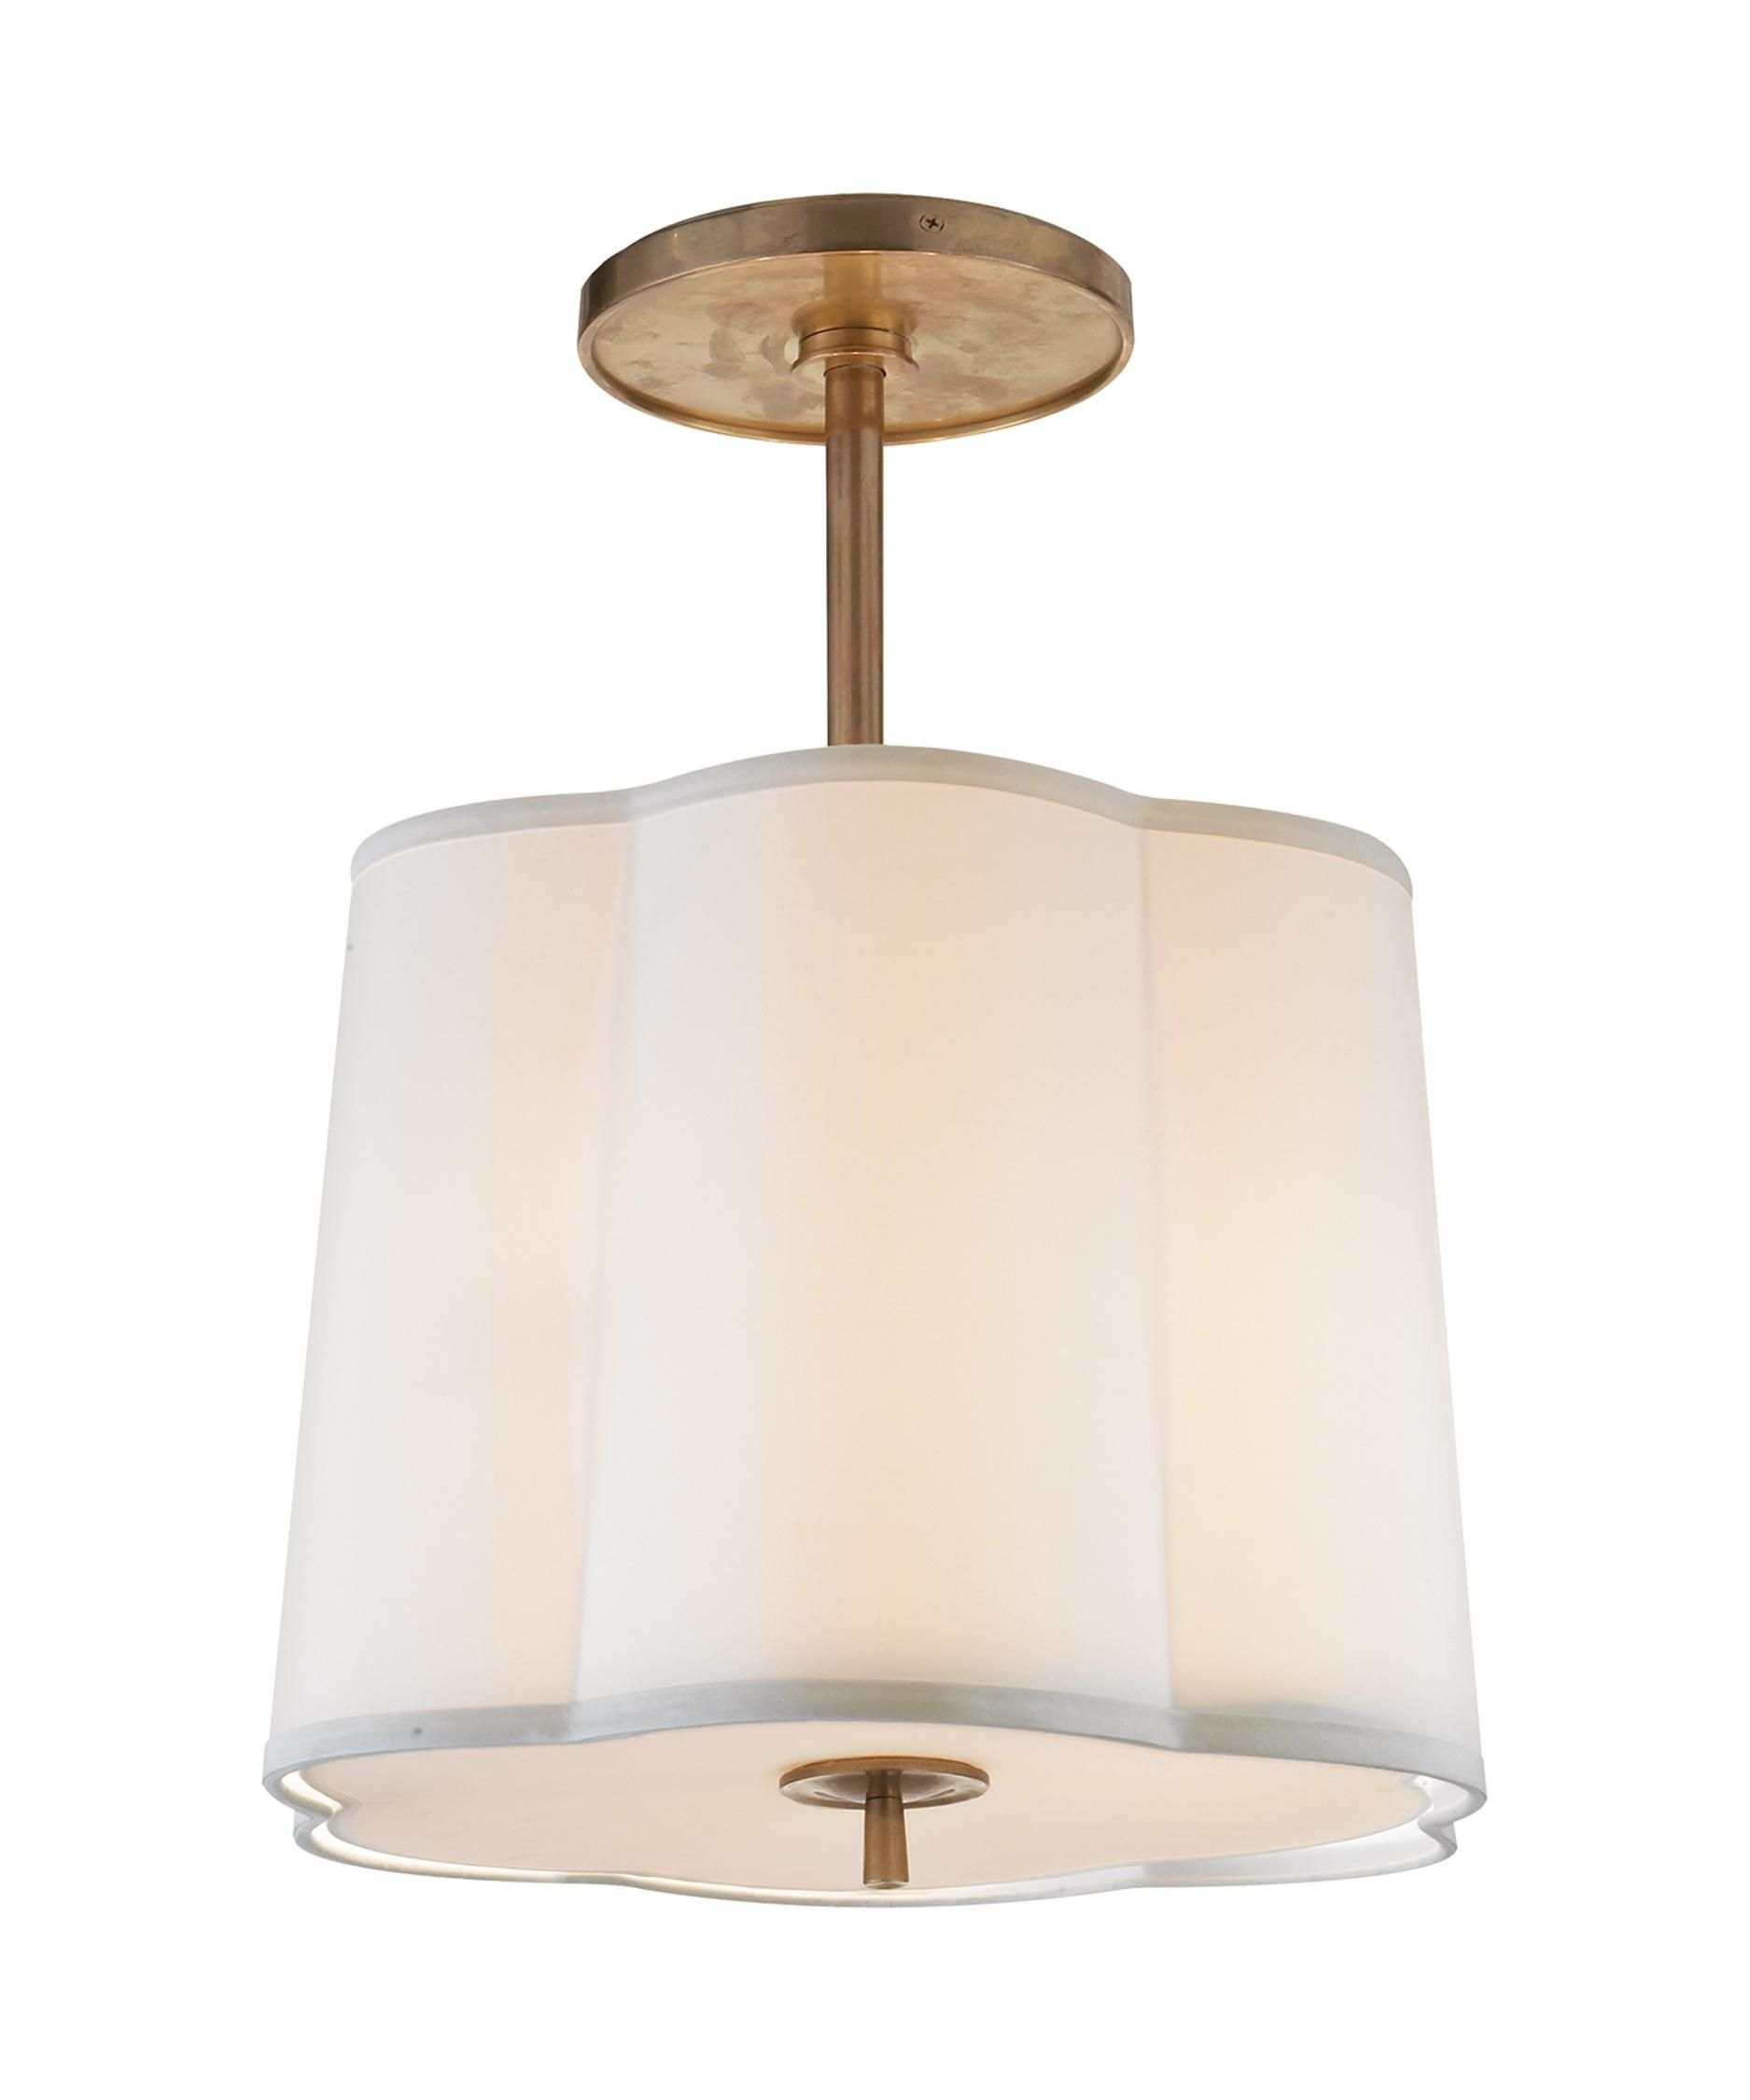 Barbara Barry Simple Scallop 15 Inch Large Pendant By Visual